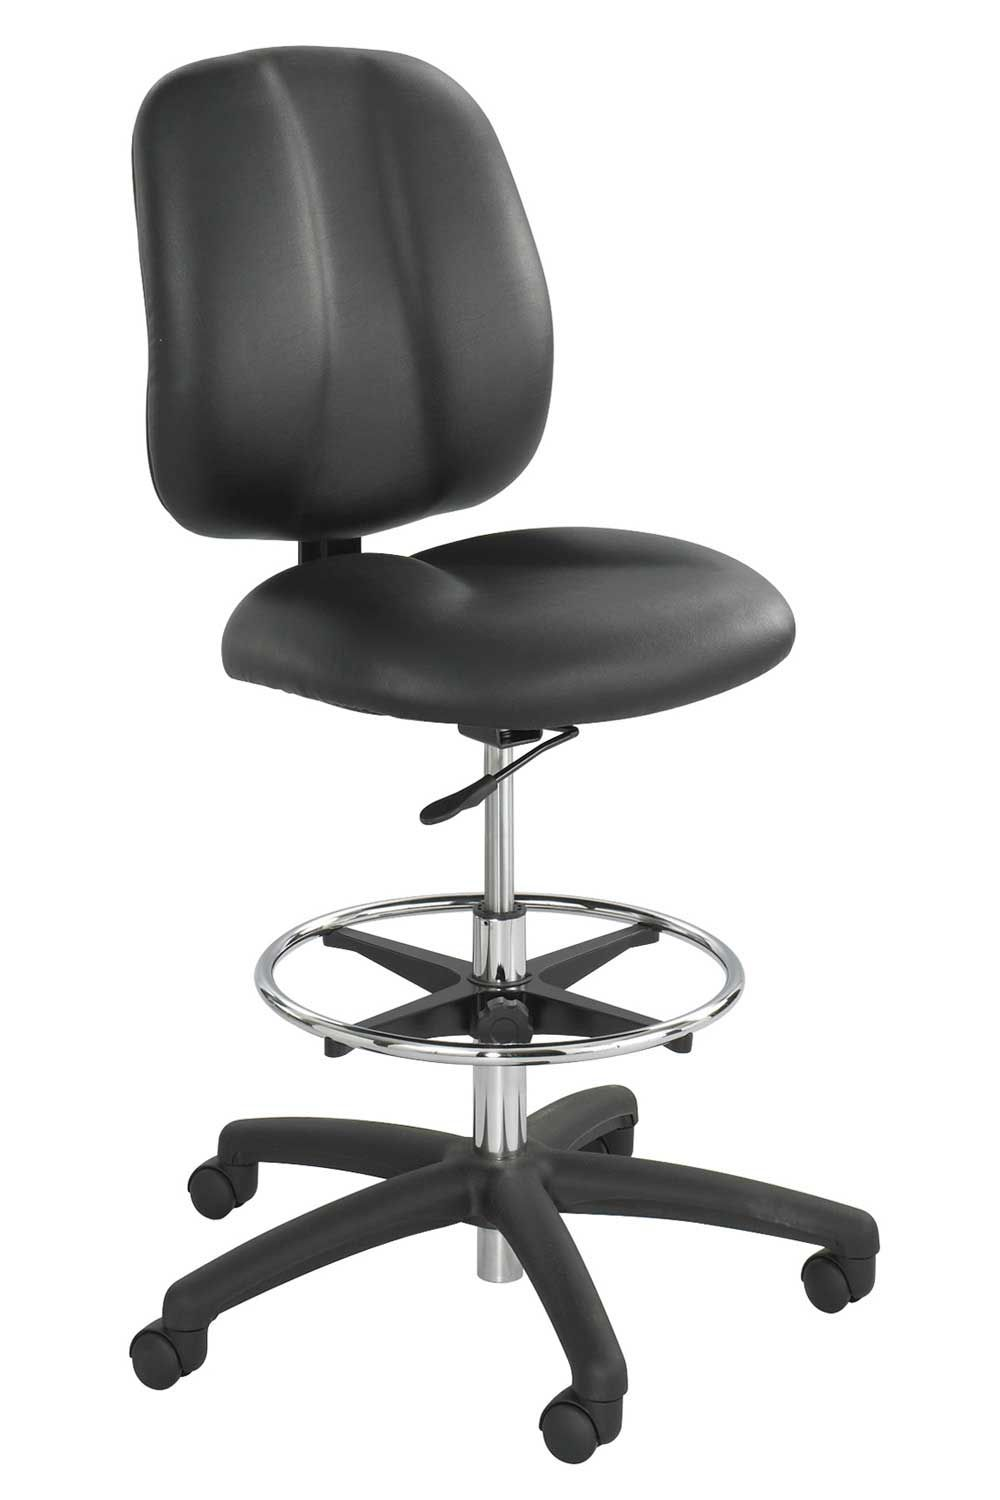 Safco Apprentice Black Contoured Tall Vinyl Office Chairs Office